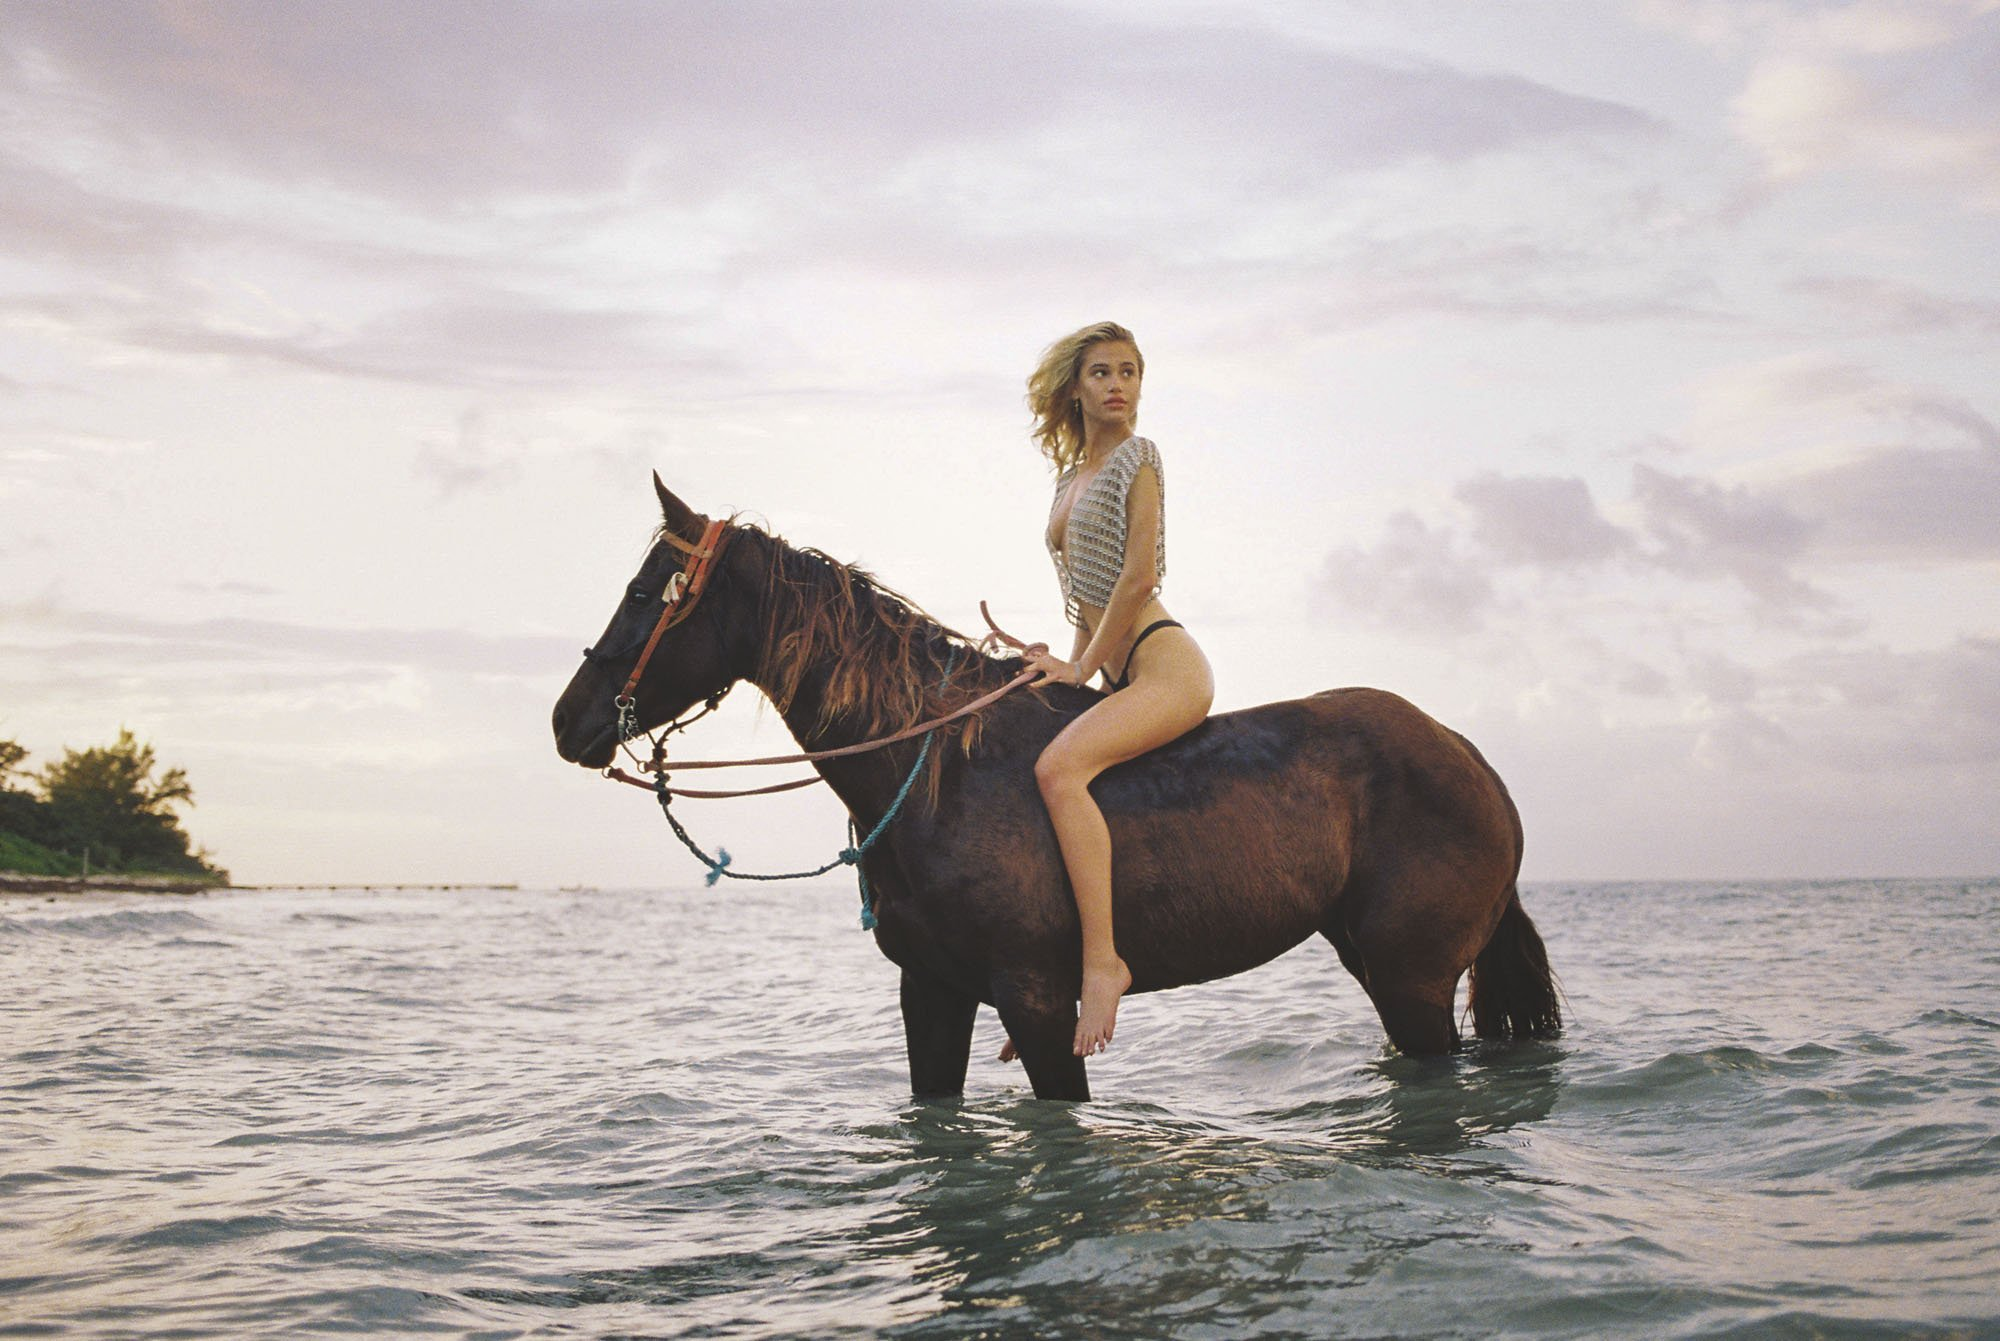 Meredith Mickelson On Horse Wallpapers - Meredith Mickelson On Horse Wallpapers